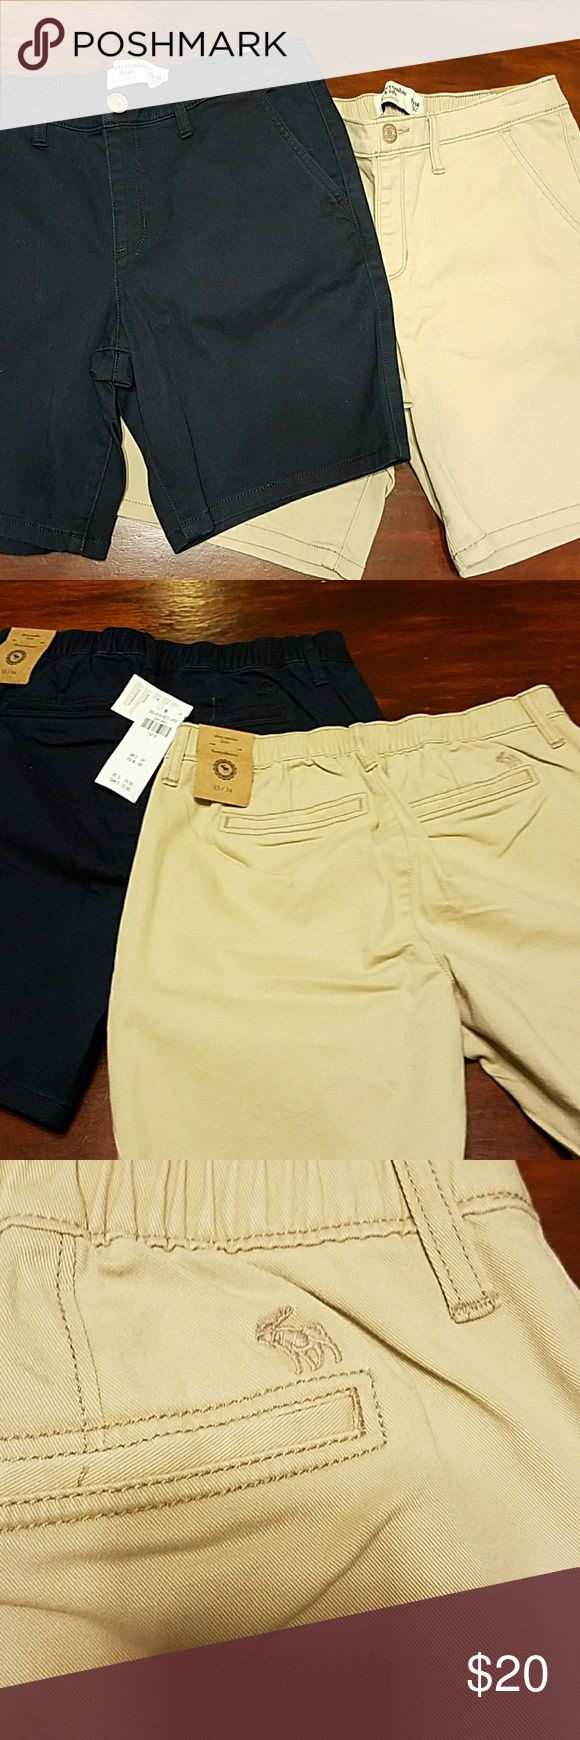 Abercrombie girls SZ 13/14 NWT boyshorts bundle 2 pairs of girls Abercrombie kids size 13/14 boyshort short. Elastic around waist, pockets in front and back. Khaki-colored and navy colored new with tags. Smoke and pet free home. These have a retail of 29.95 each. Abercombie Kids Bottoms Shorts